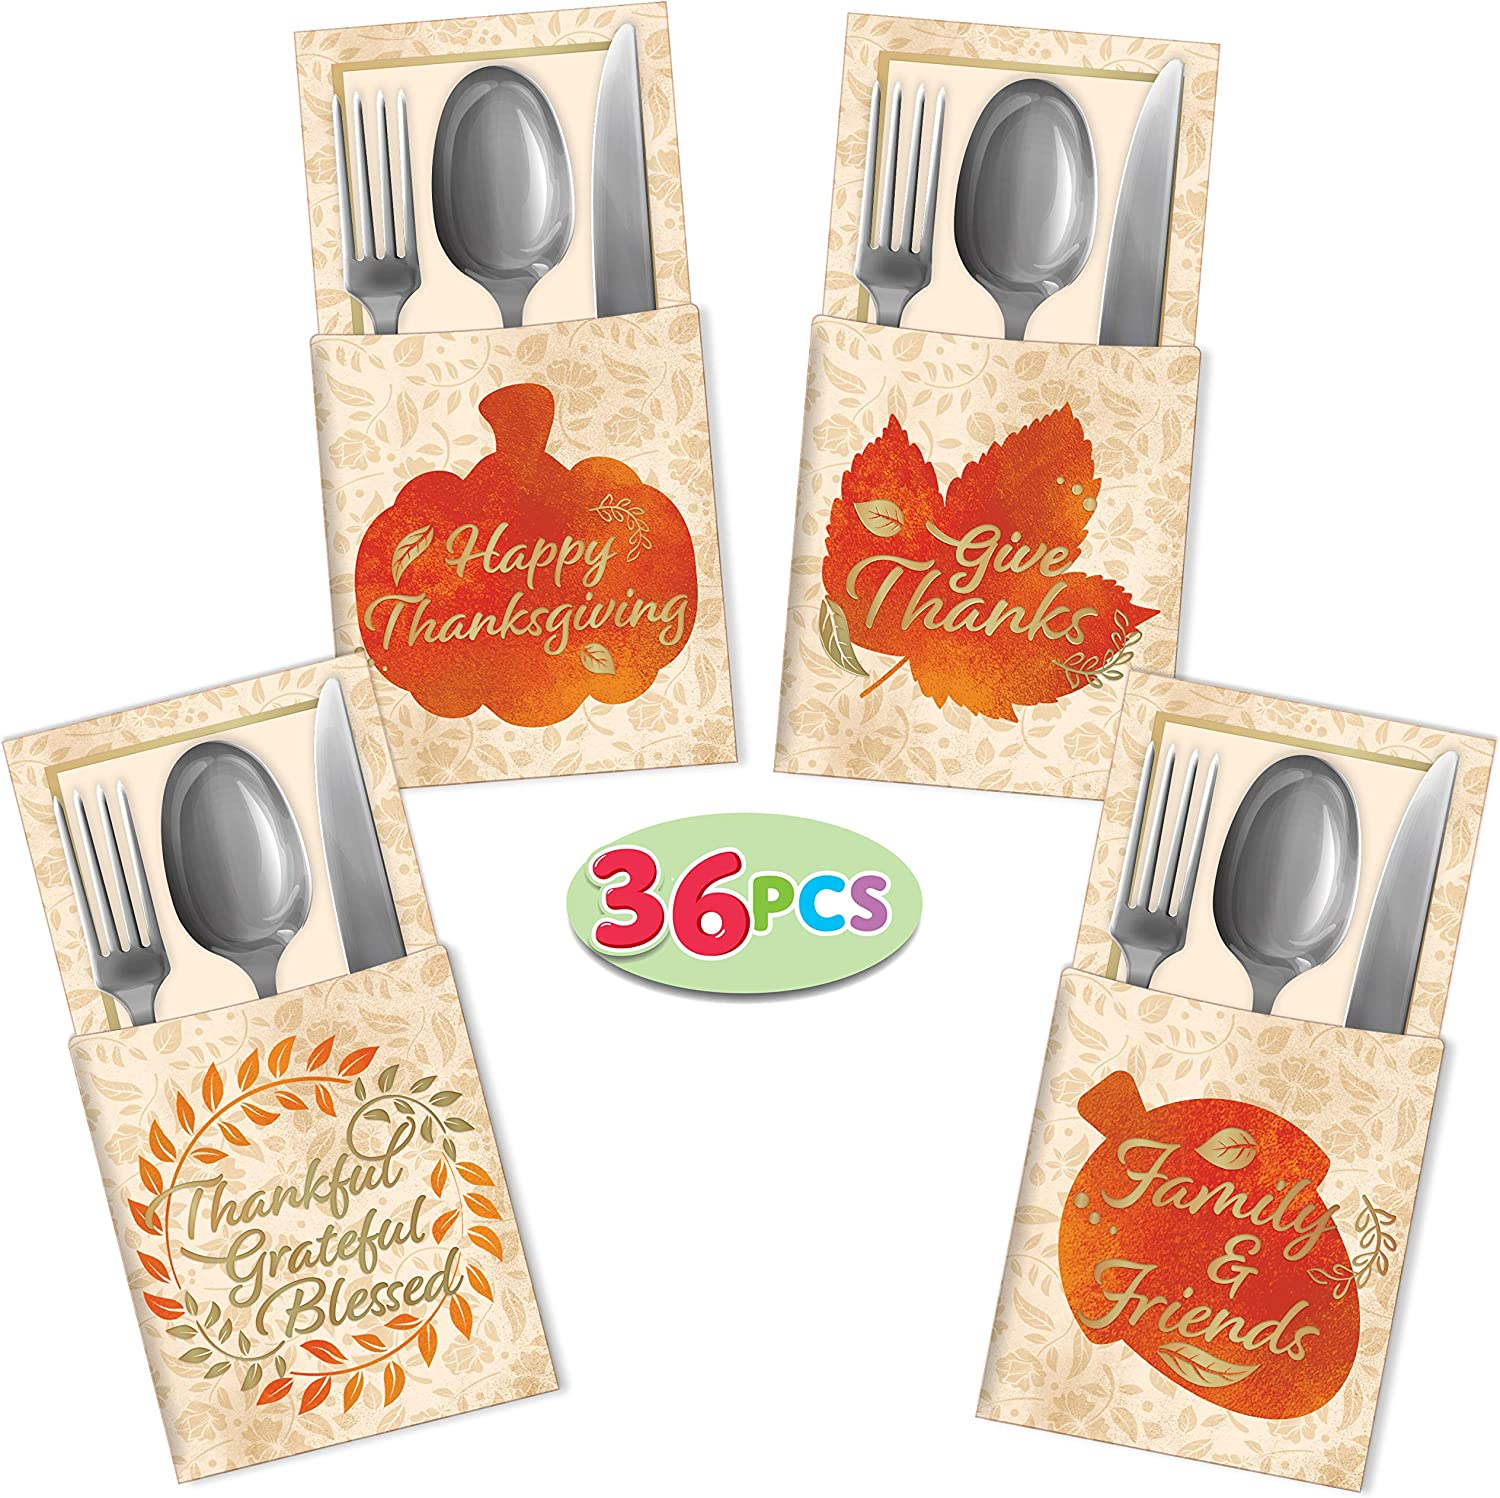 36 Thanksgiving Turkey Cutlery Decorative Gold Foil Utensil Holders for Autumn Fall Harvest Party Favor Supply Dinner Table Decor.